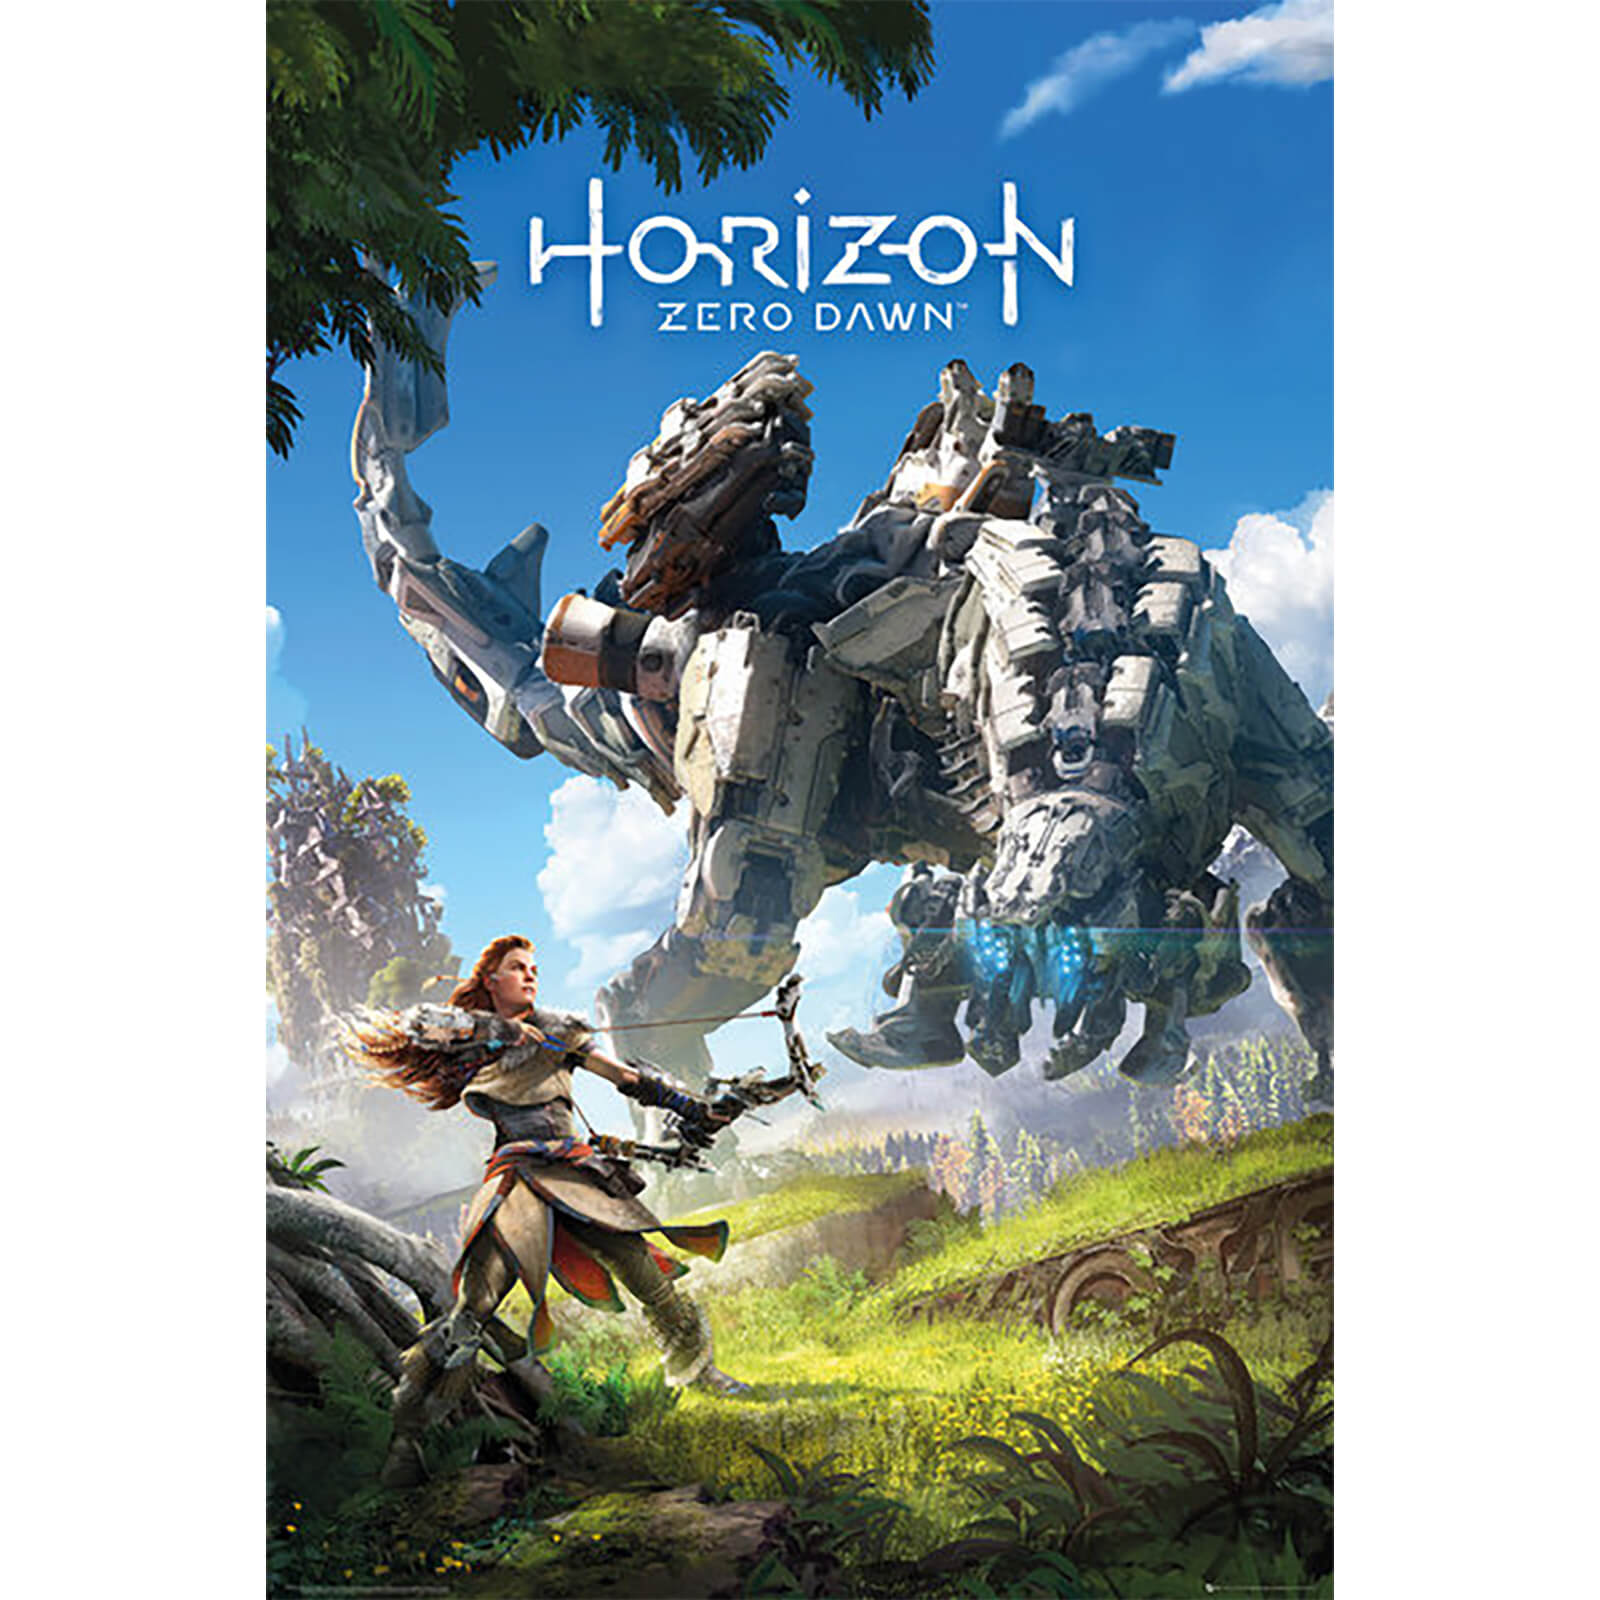 Horizon Zero Dawn Key Art - 61 x 91.5cm Maxi Poster